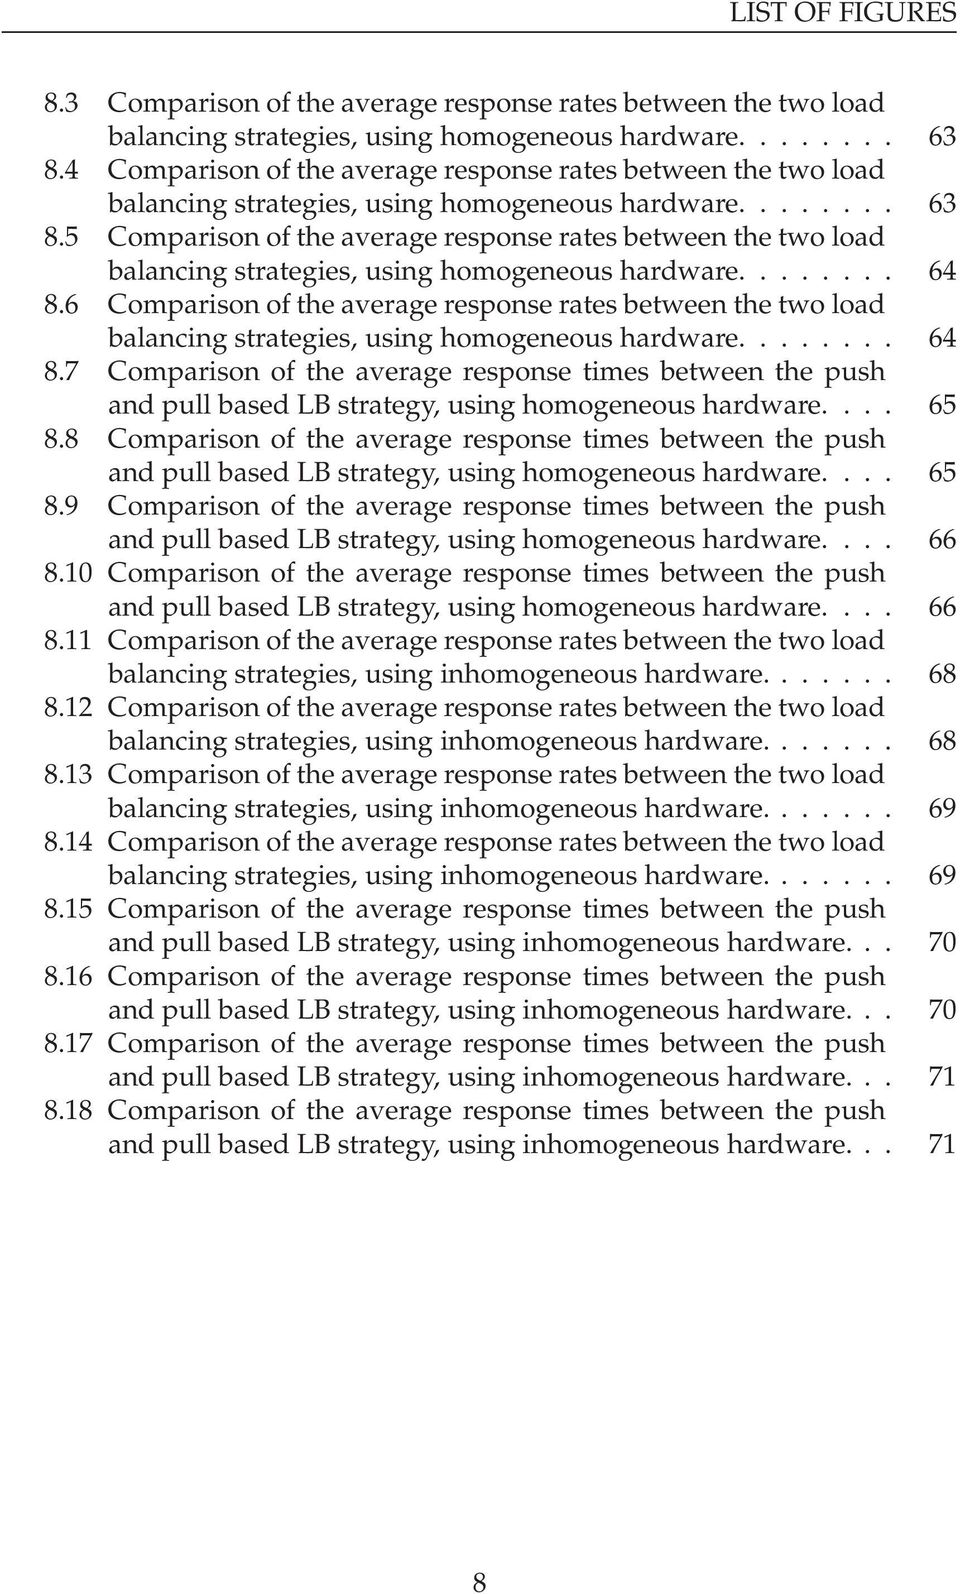 5 Comparison of the average response rates between the two load balancing strategies, using homogeneous hardware........ 64 8.